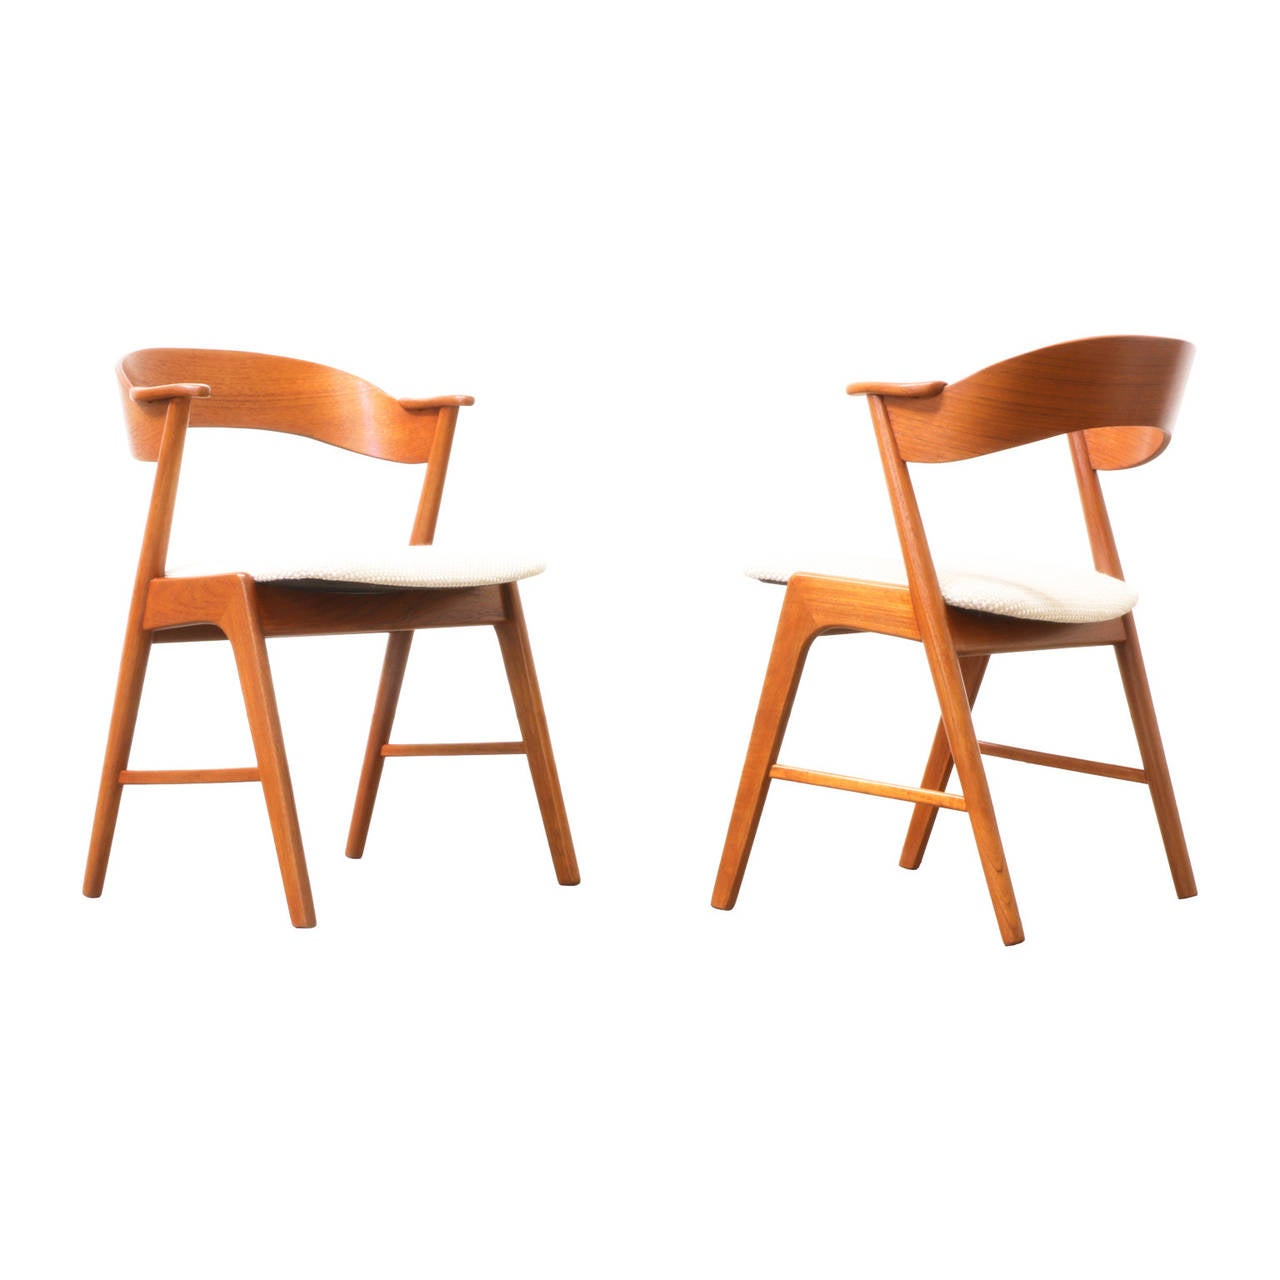 Kai kristiansen teak dining chairs by korup stolefabrik at 1stdibs - Kai kristiansen chairs ...